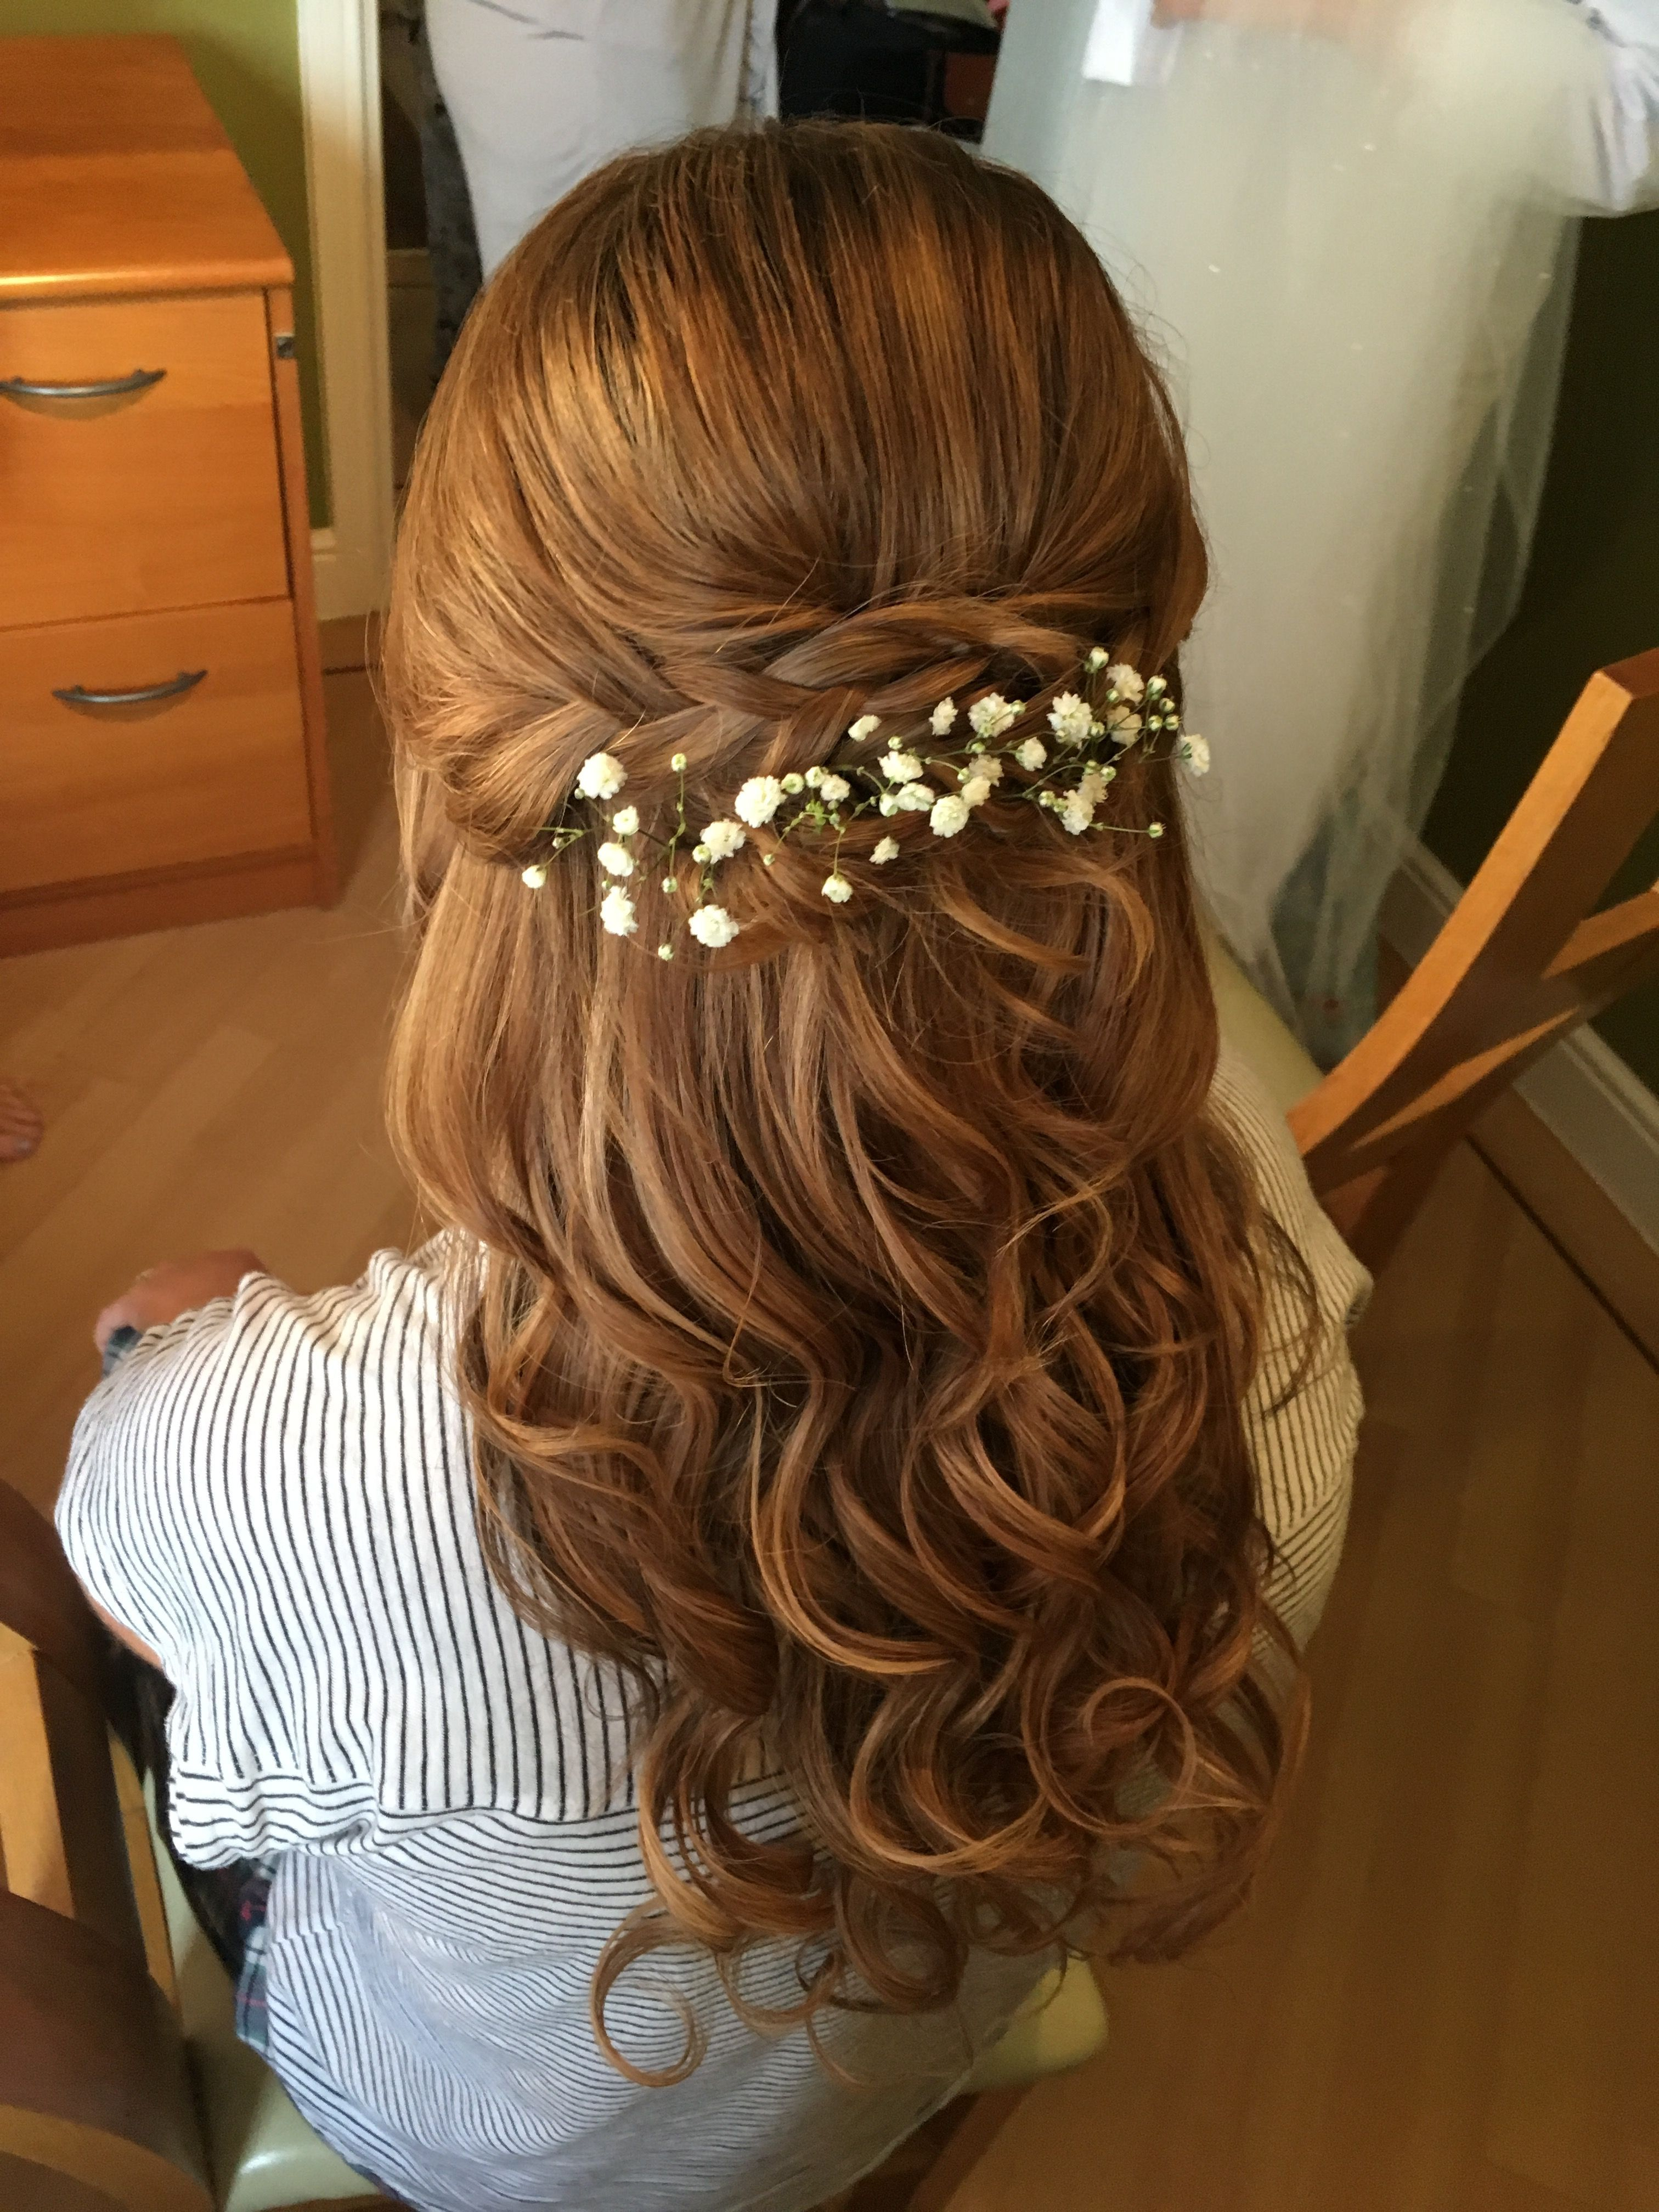 bridesmaid long hair with extensions curled and styled with